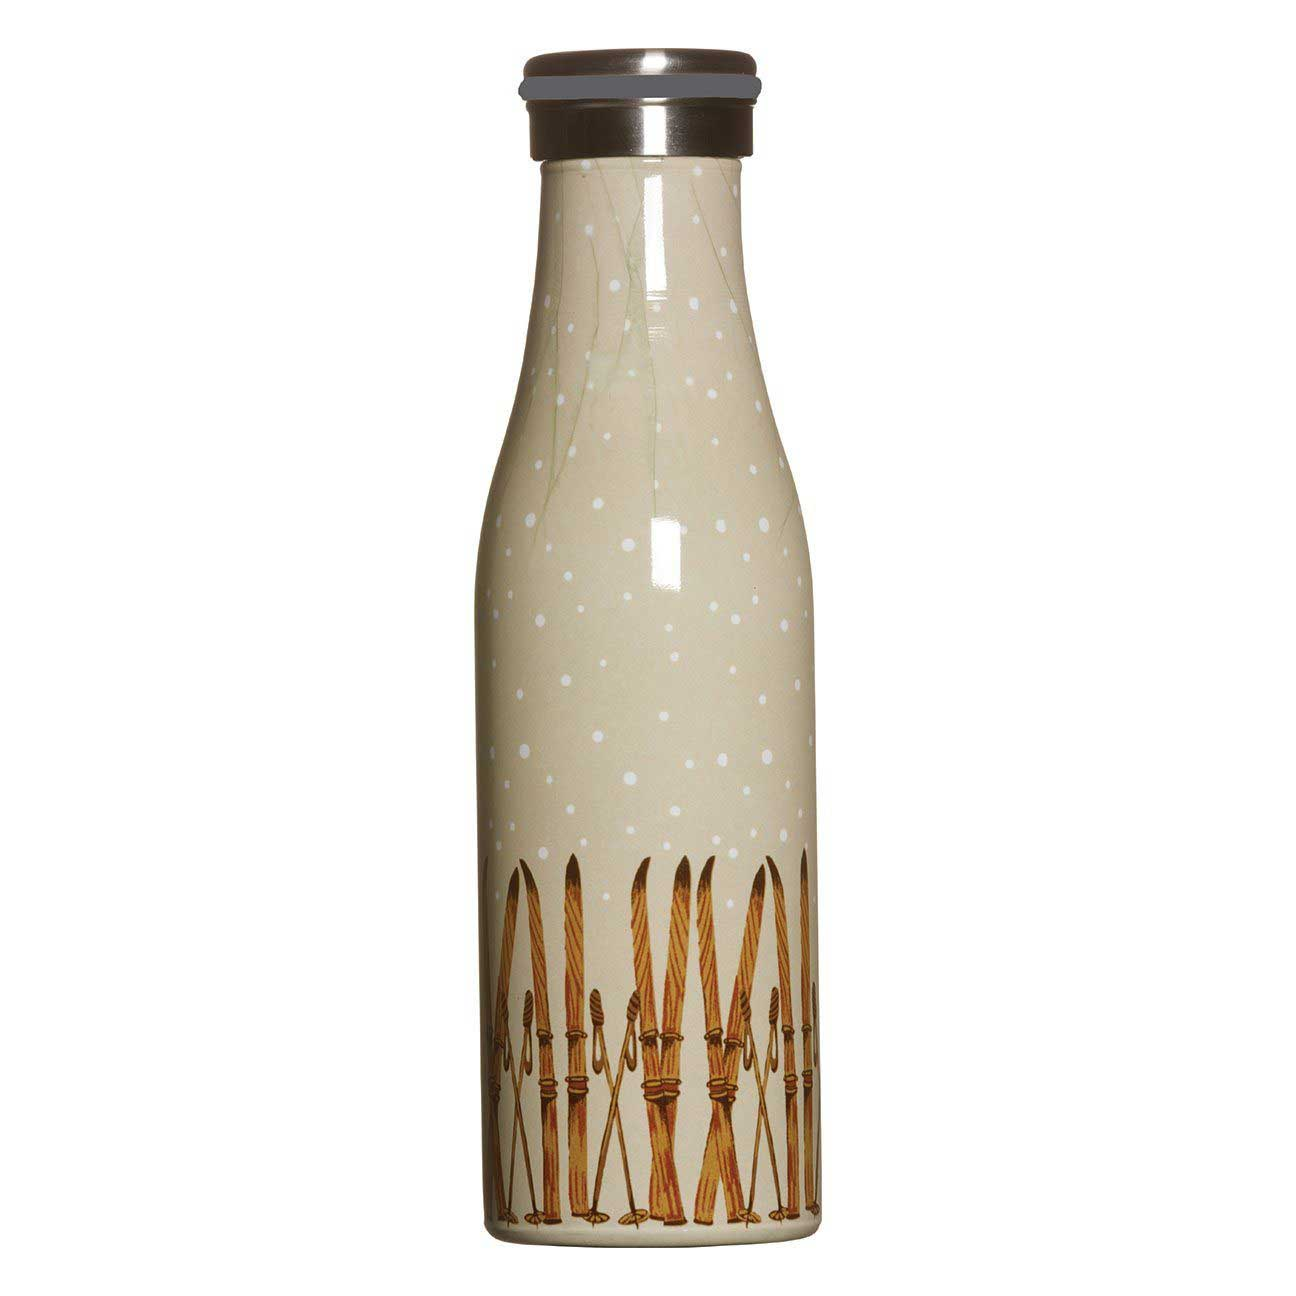 blu bottle - reusable water bottle with vintage ski print in brown and beige